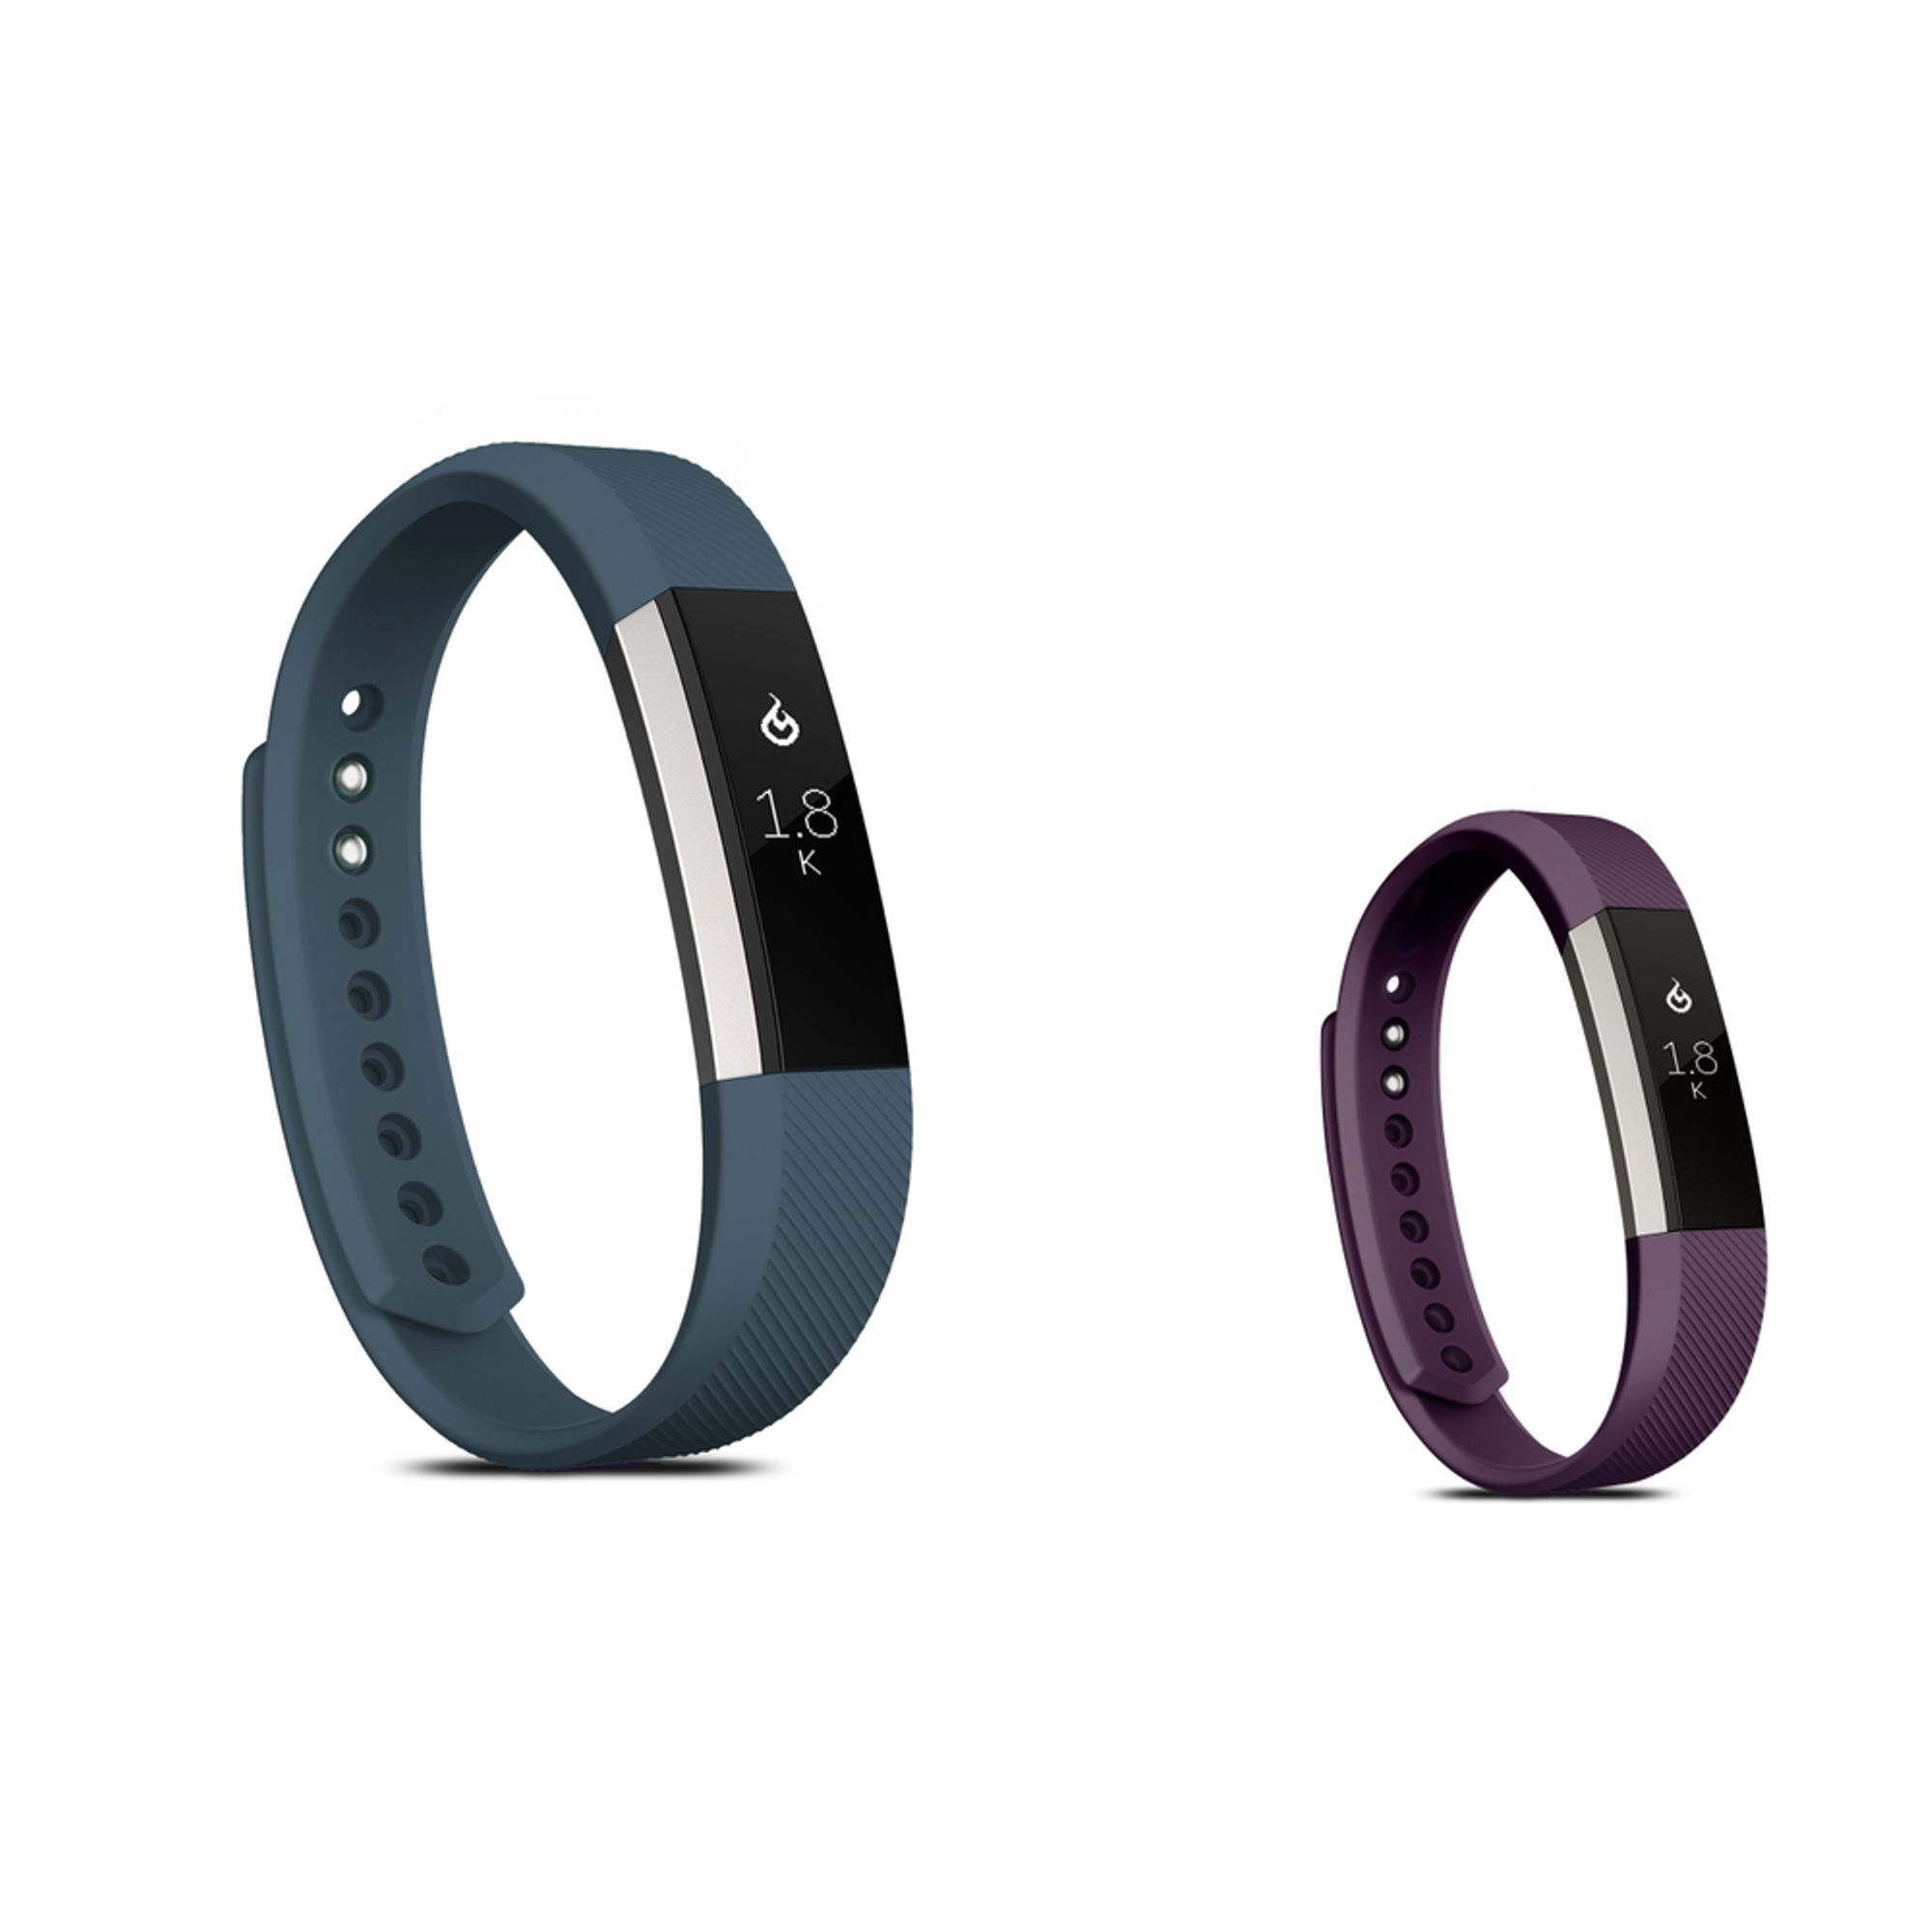 Zodaca Soft TPU Rubber Adjustable Wristbands Watch Band Strap For Fitbit Alta HR / Alta SMALL Size - Dark Gray + Purple